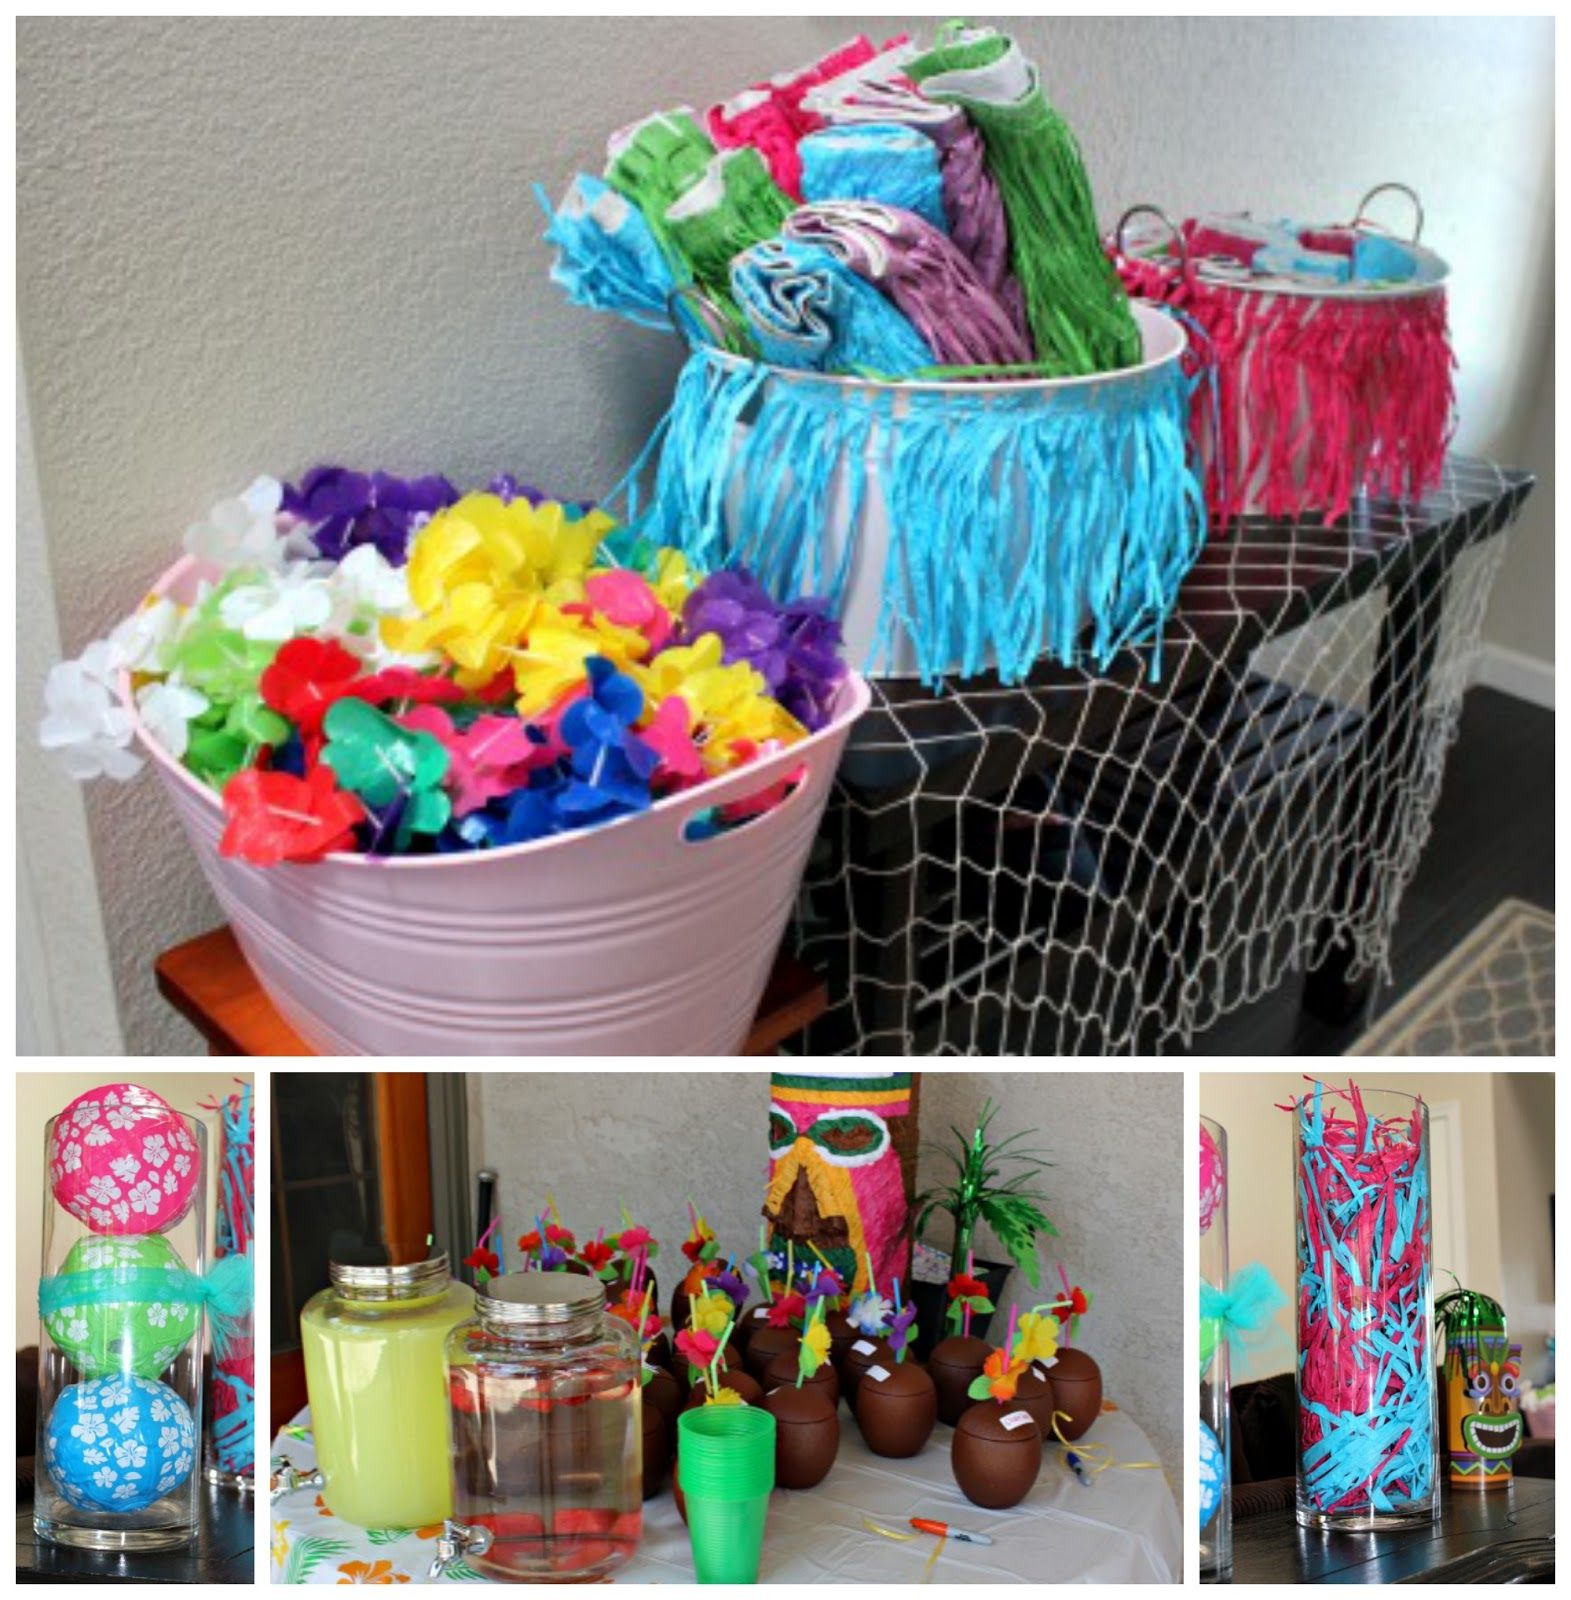 Luau Party Ideas - The Naptime Reviewer